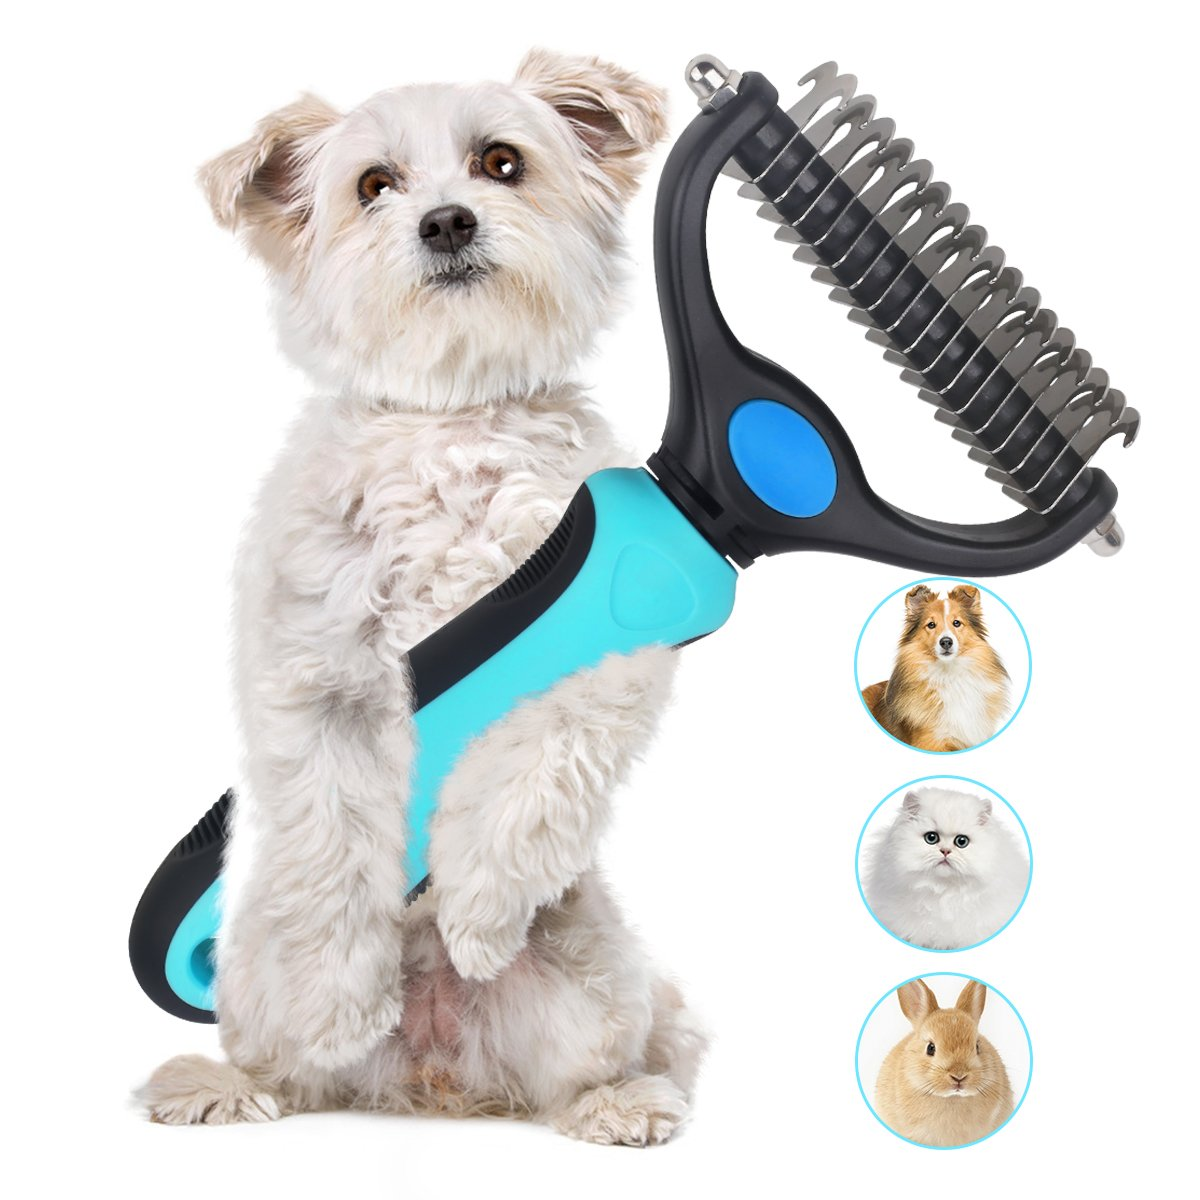 Dematting Comb Double Sided Pet Grooming Tools Dog Deshedding Brush Stainless Steel Pets Undercoat Rake for Long Short Hair Cats Dogs by PetGuard (Image #1)